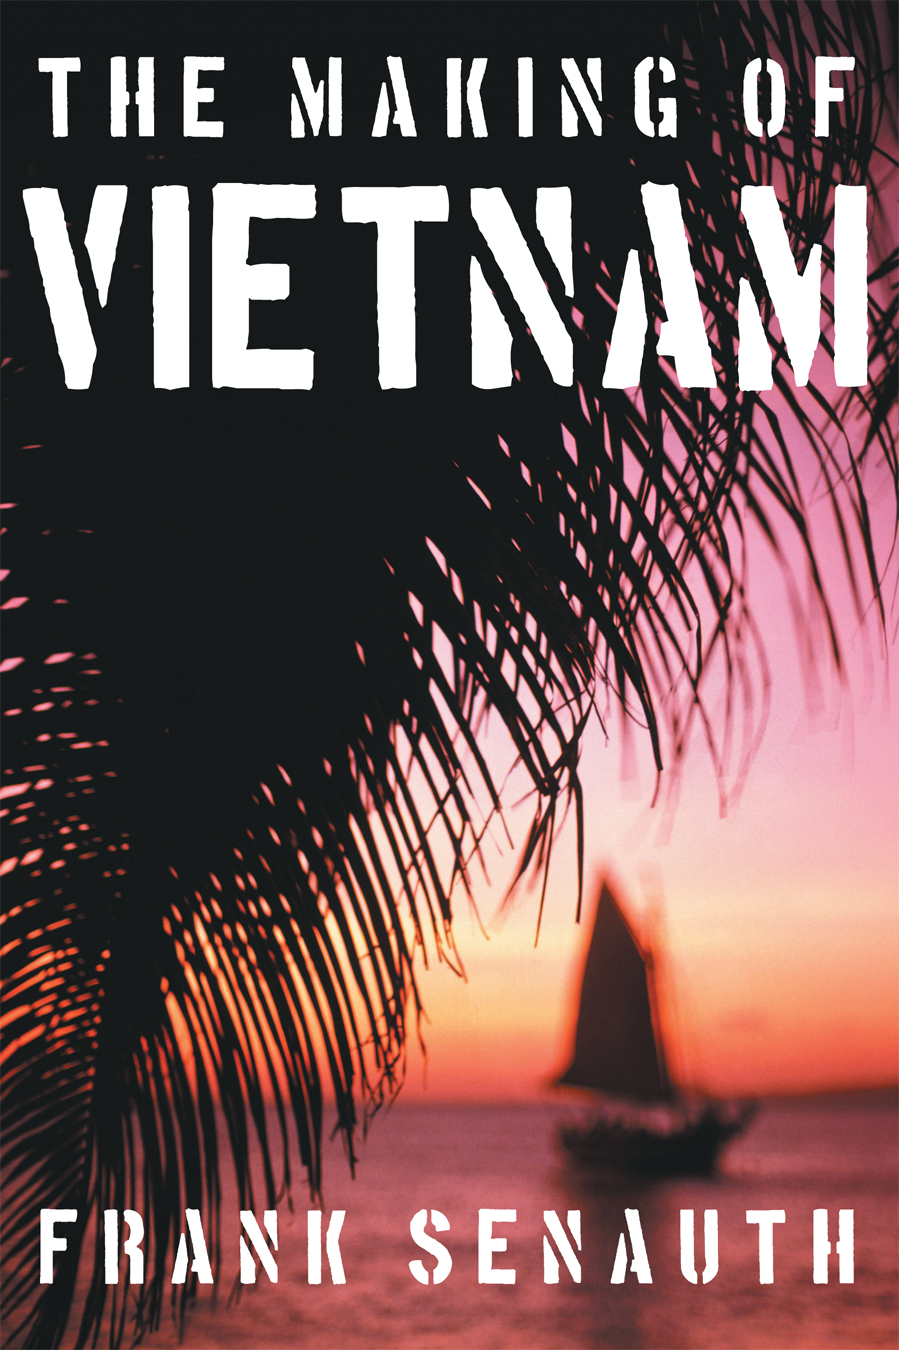 The Making of Vietnam By: Frank Senauth